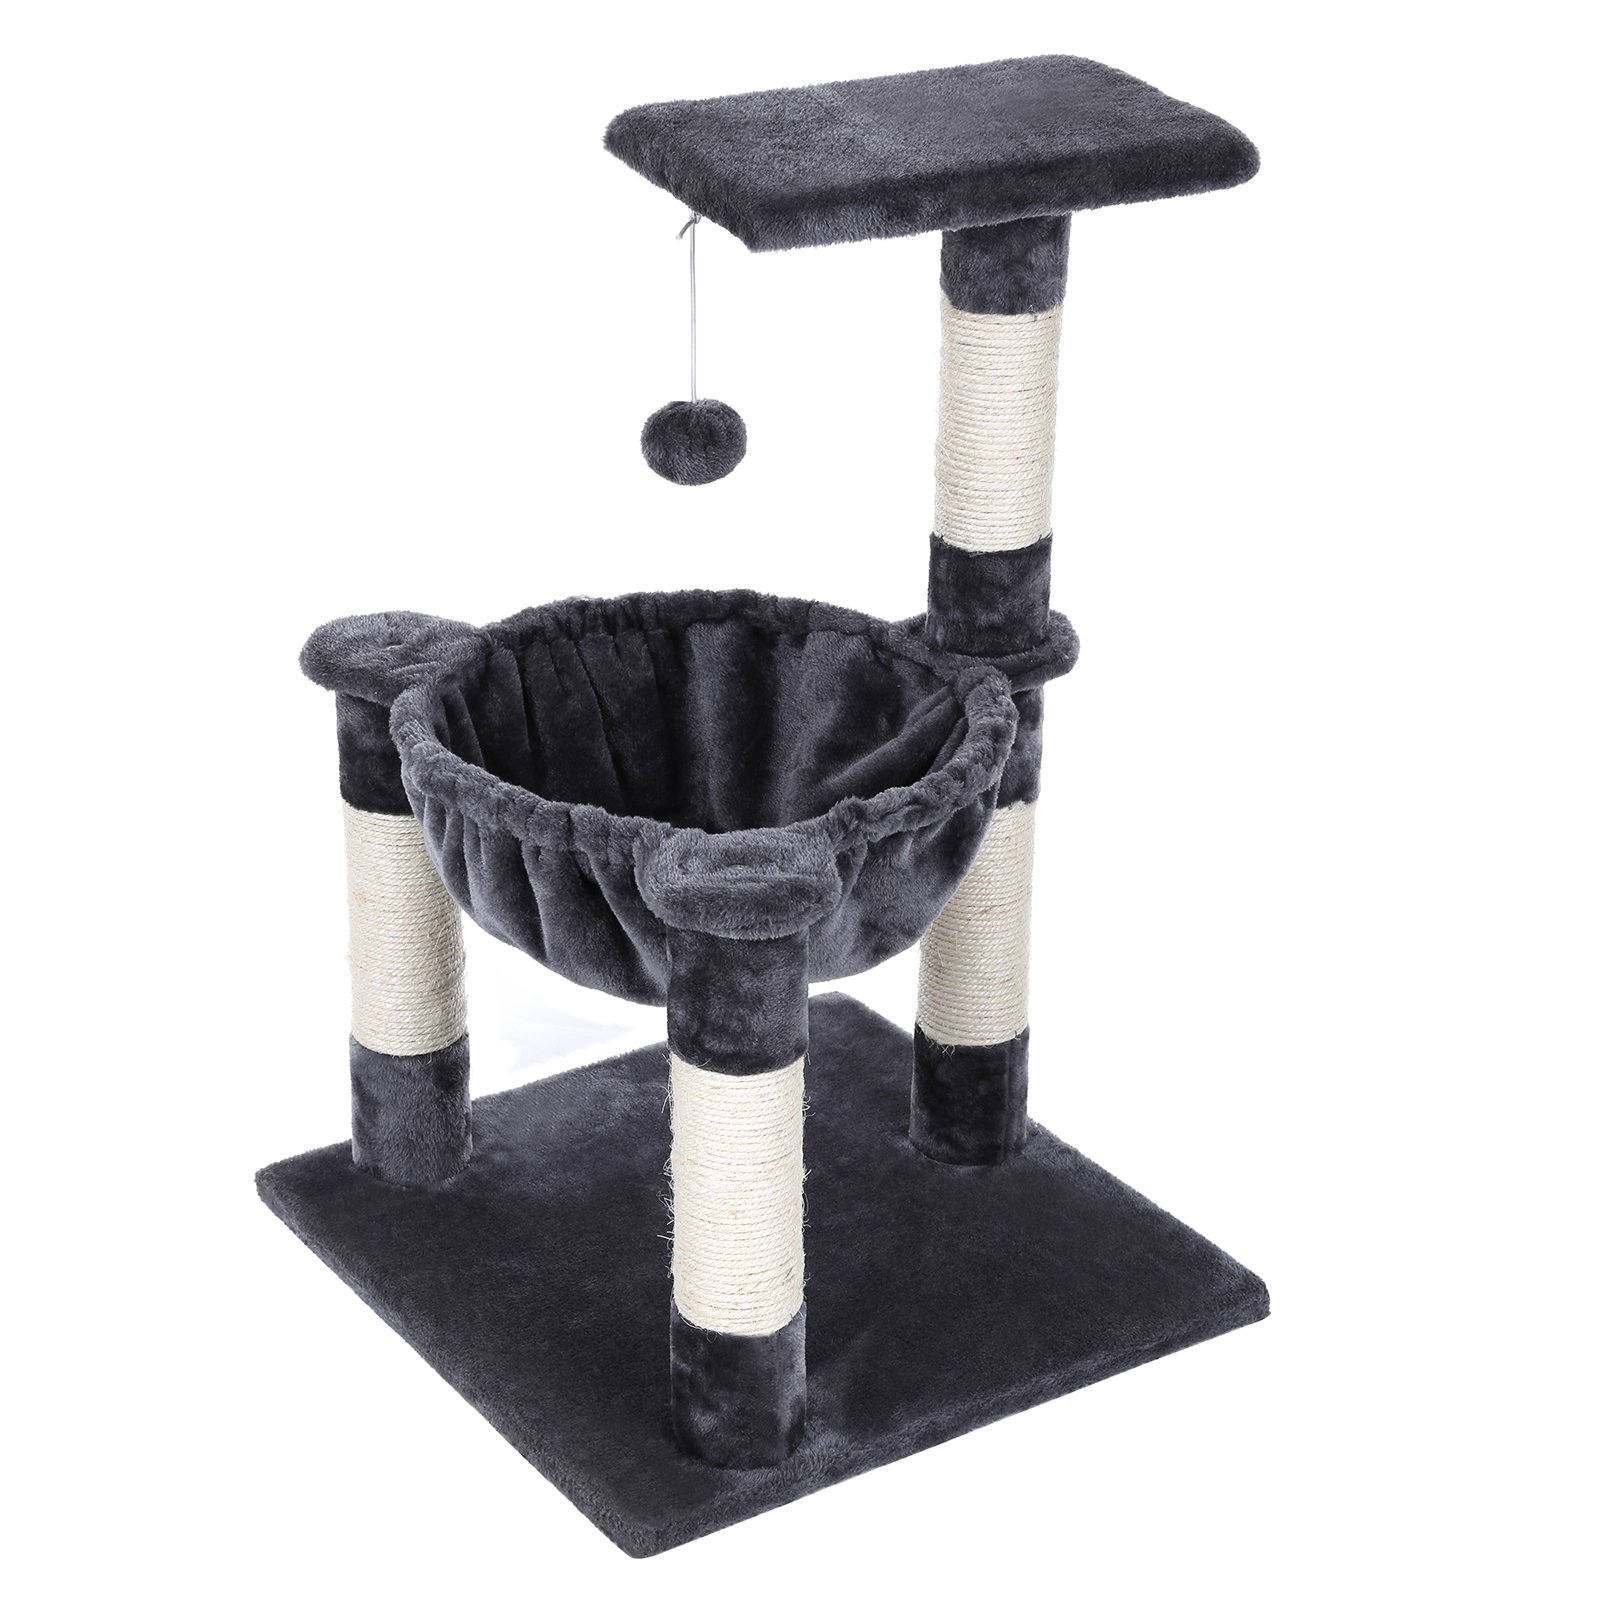 SONGMICS Cat Tree Condo House with Sisal Scratch Posts Kitty Furniture Grey UPCT68G